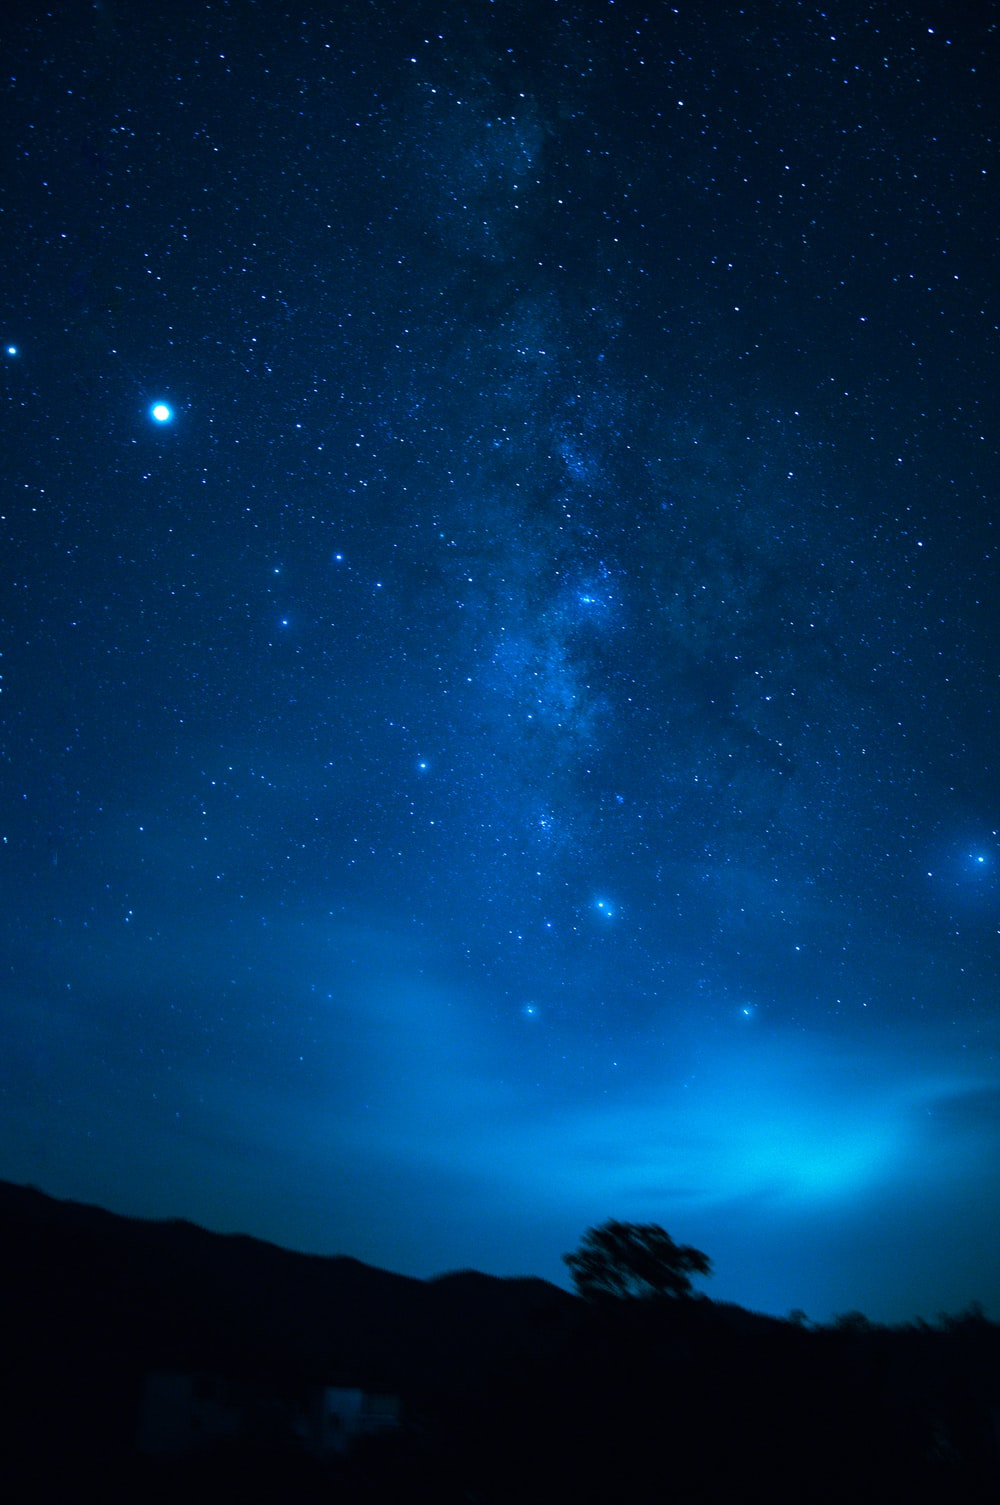 Blue Night Sky Pictures Download Free Images On Unsplash Calm house under night sky shooting star